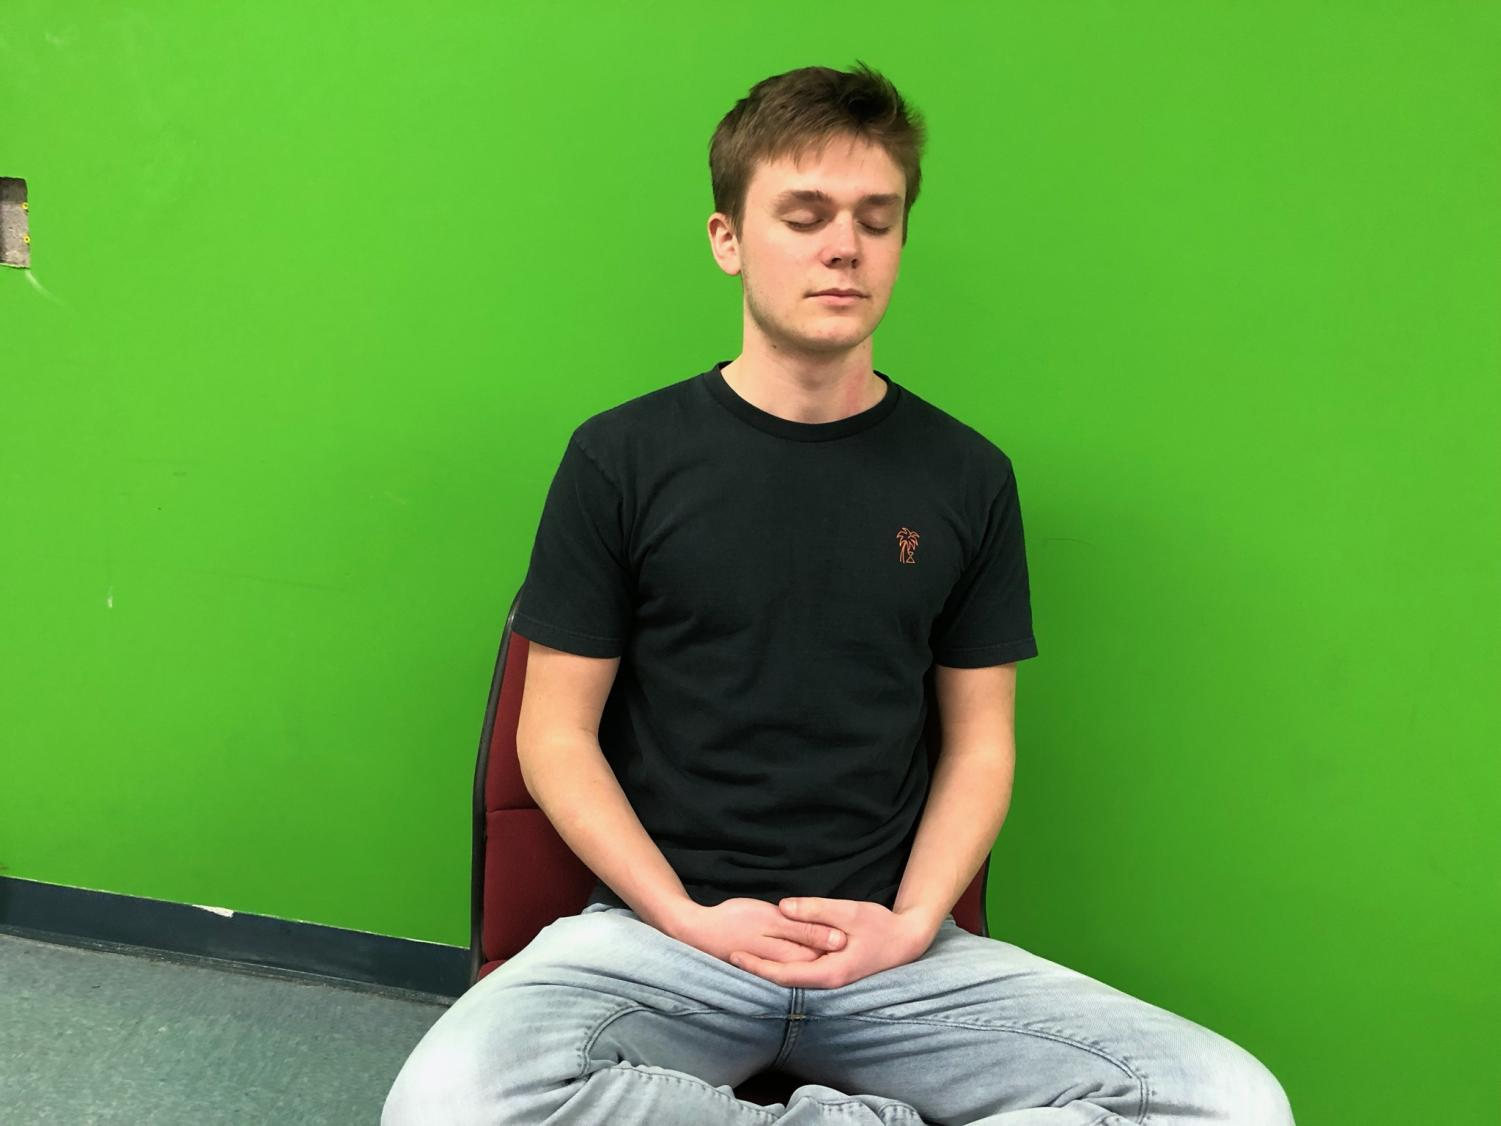 Thad Fulmer demonstrates his meditation techniques